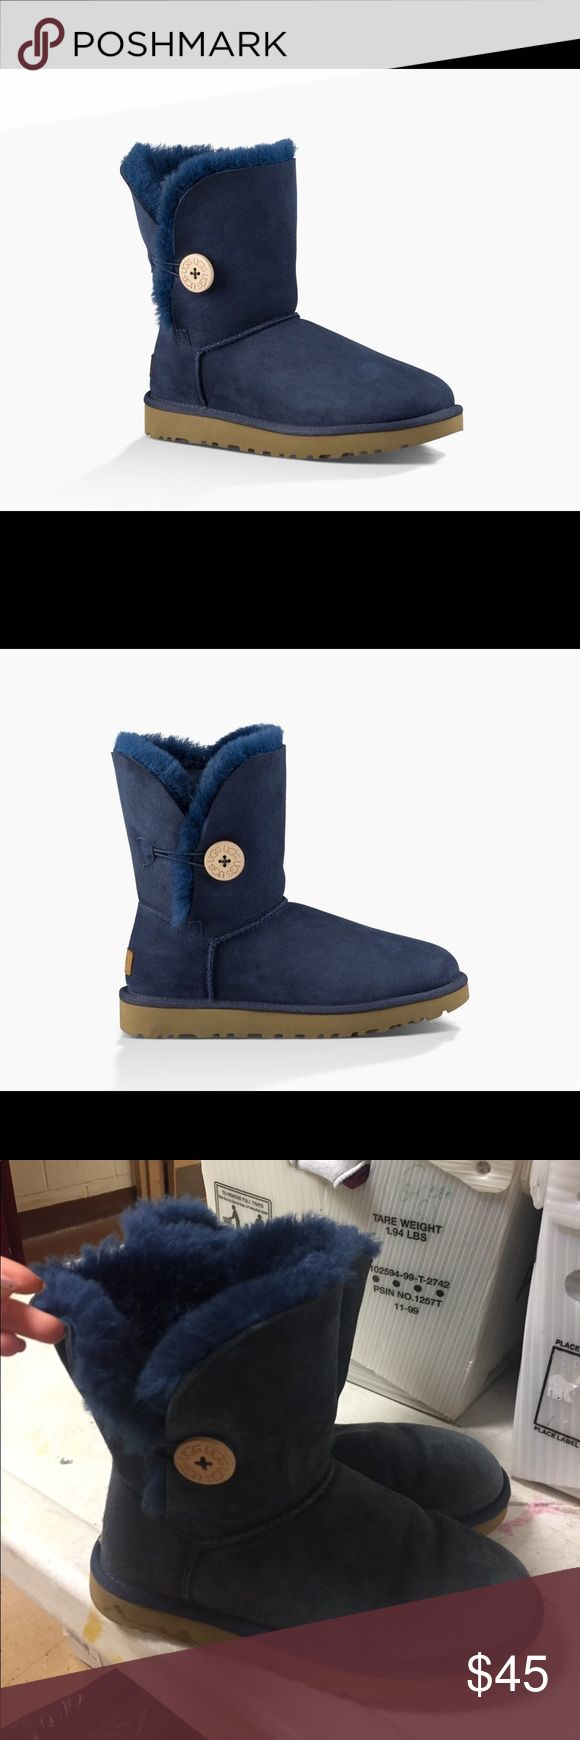 Bailey Button Navy Blue Uggs Good Condition super cute uggs UGG Shoes